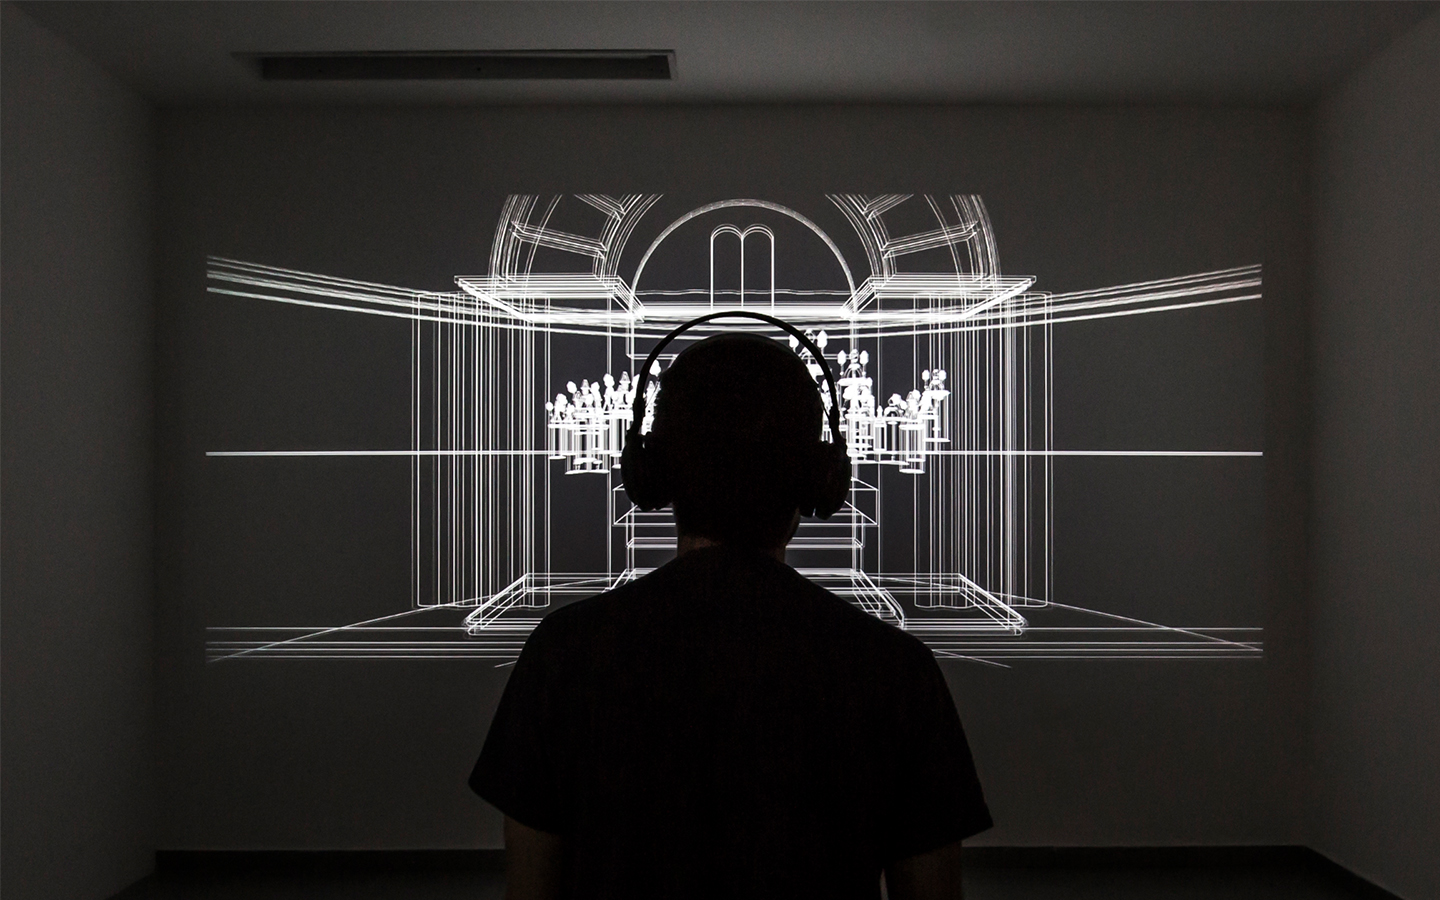 Dor Zlekha Levy, 'Model' from 'Shomer', 2019, HD Video with sound - synchronized to wireless headphones, 8:32 minutes. Installation view, Hamidrasha Gallery